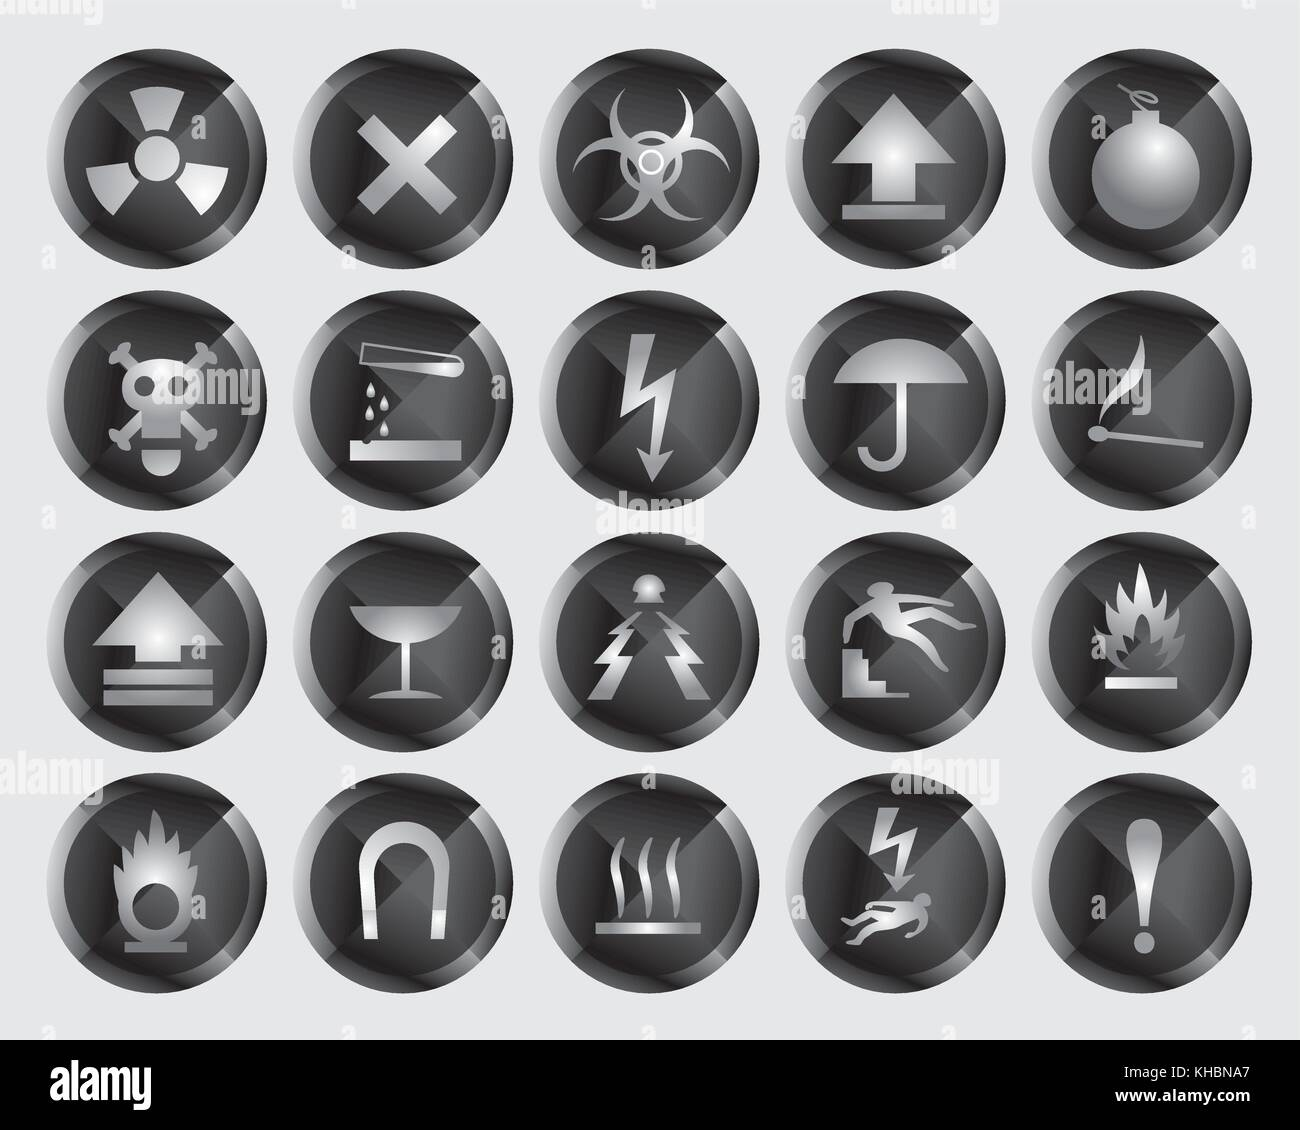 danger signs and icons - vector icon set - Stock Image